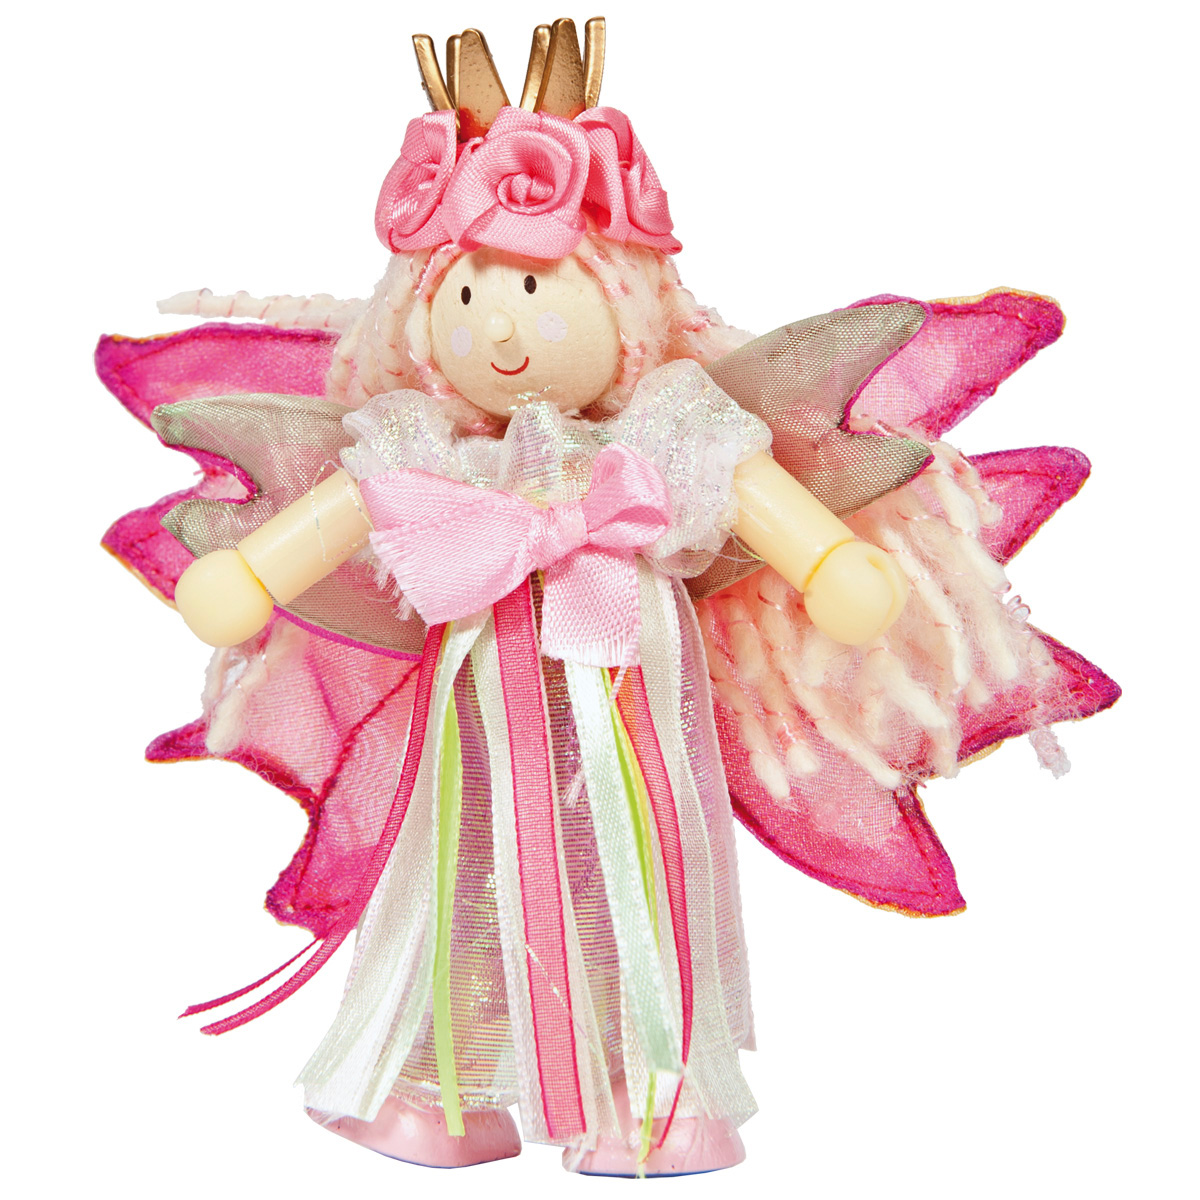 Le Toy Van Budkins- Princess Fairybelle